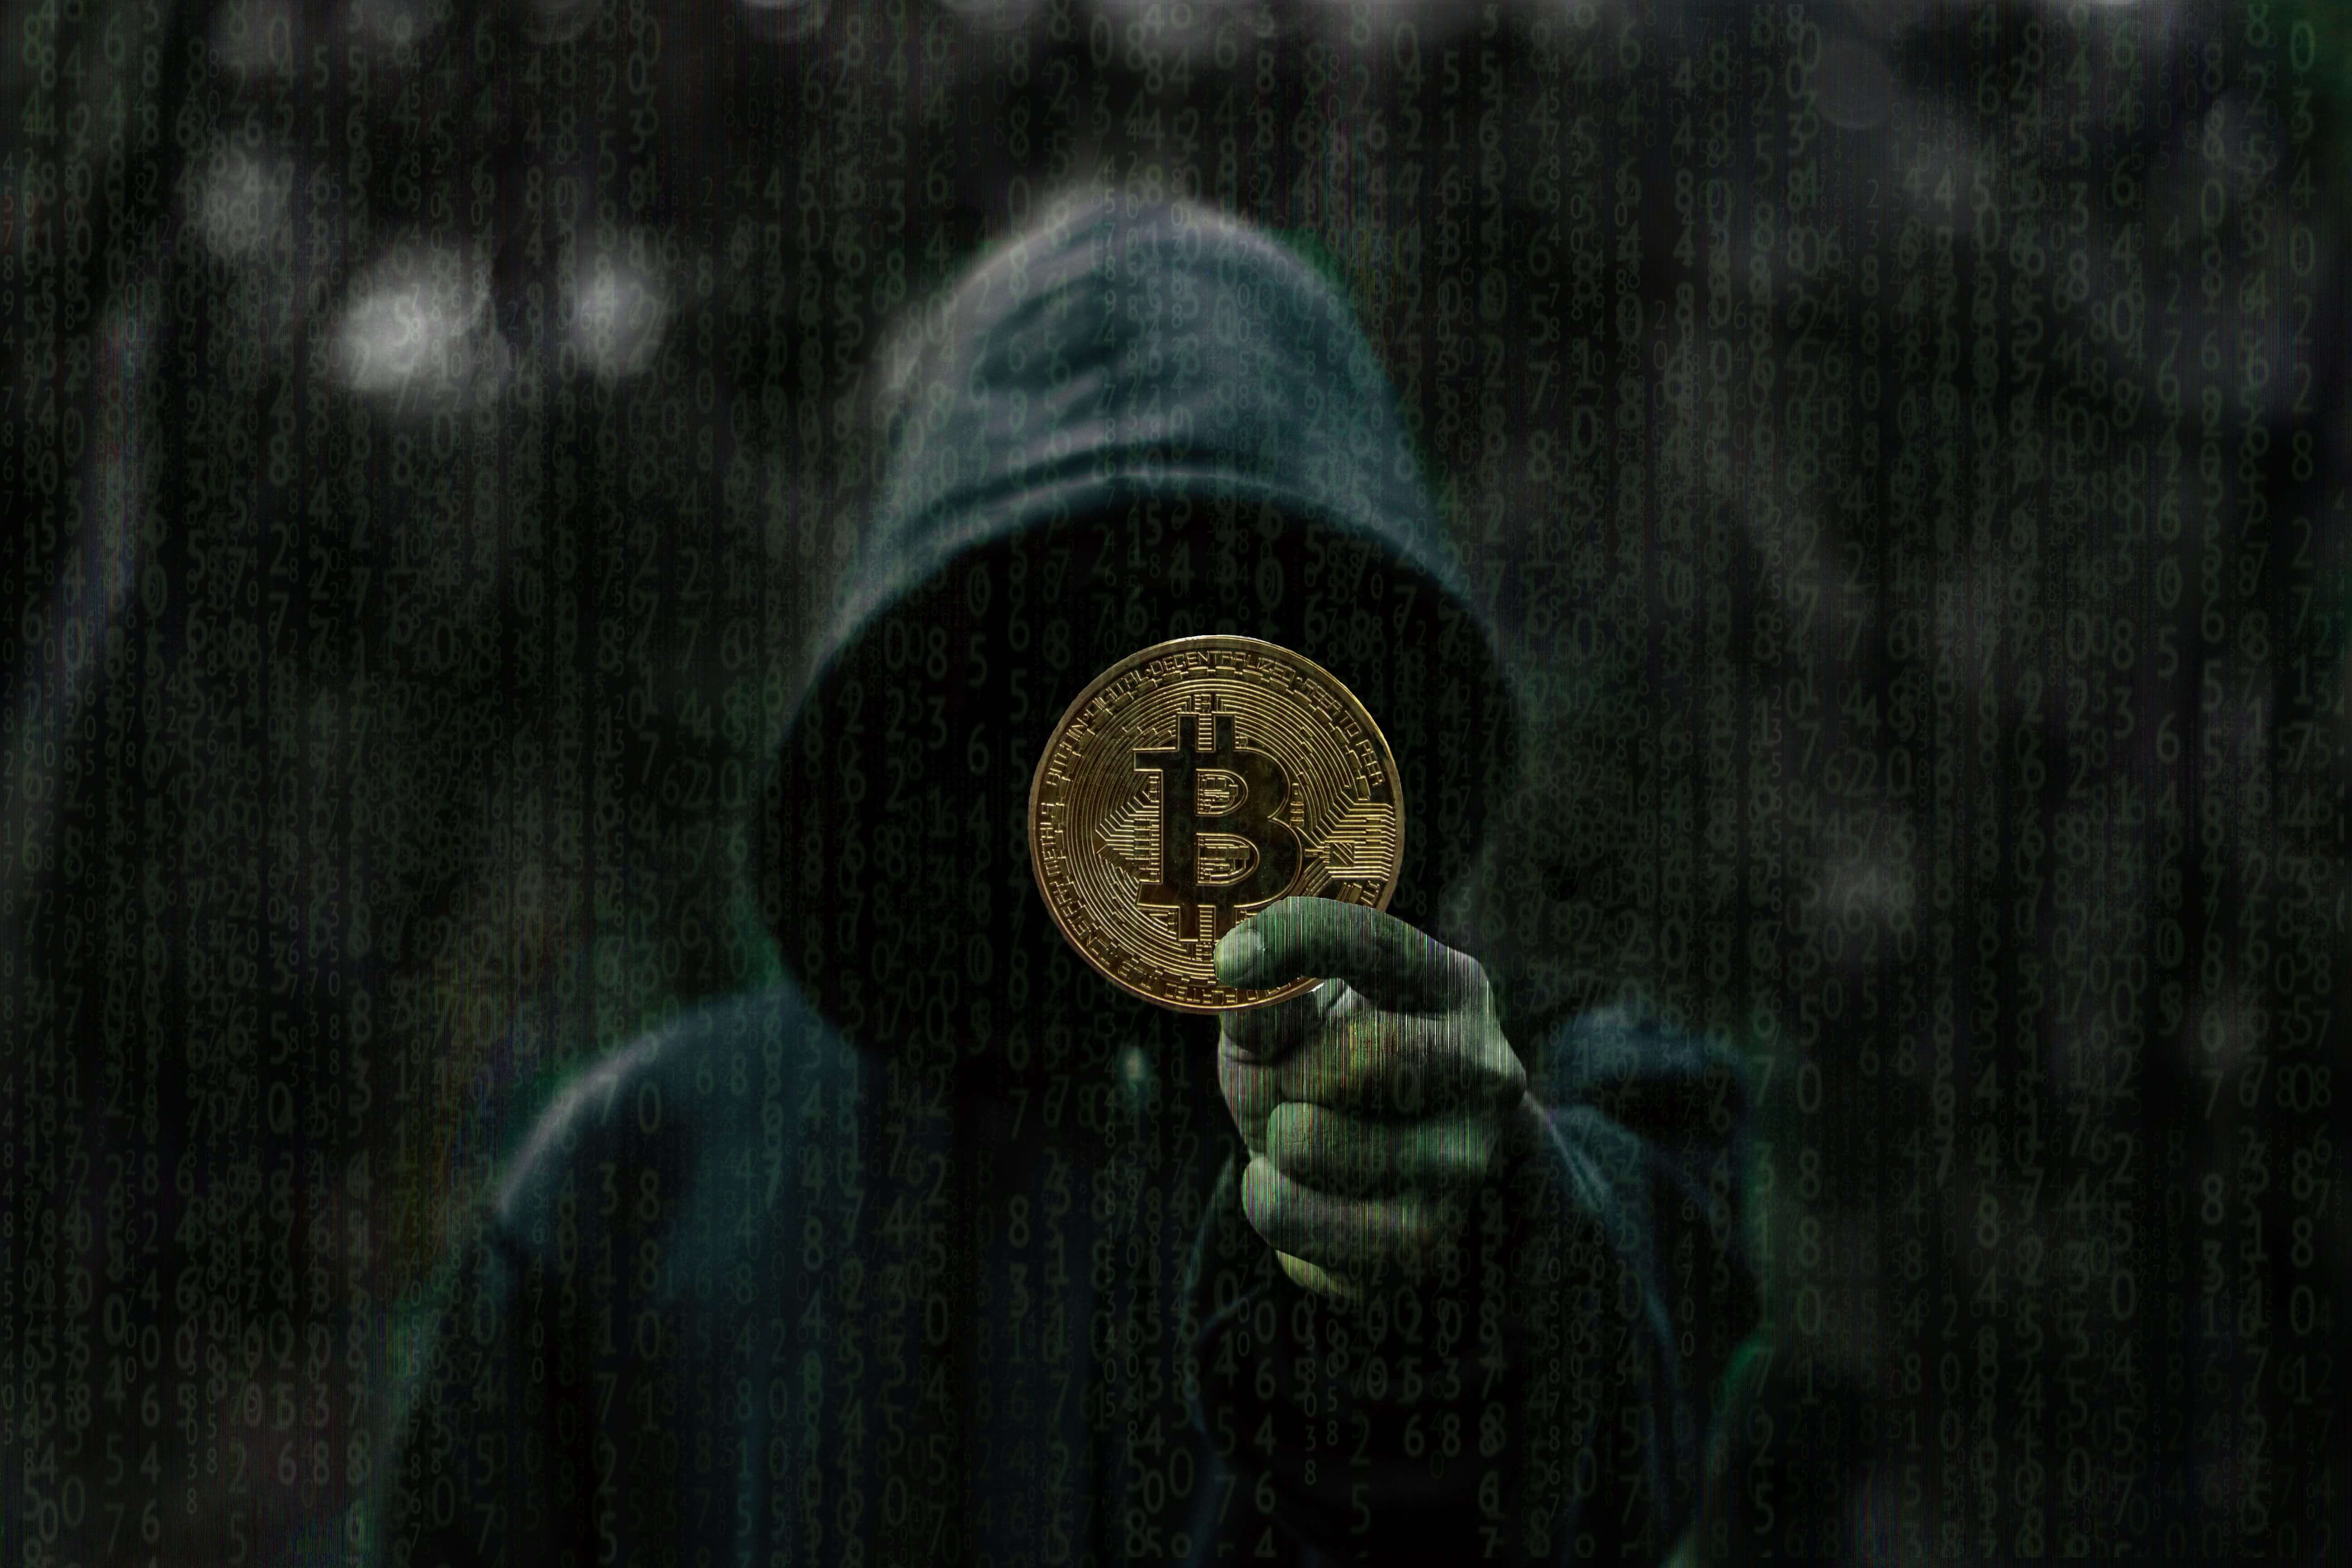 The hack is the largest in the history of decentralized finance. Source: Piqsels.com